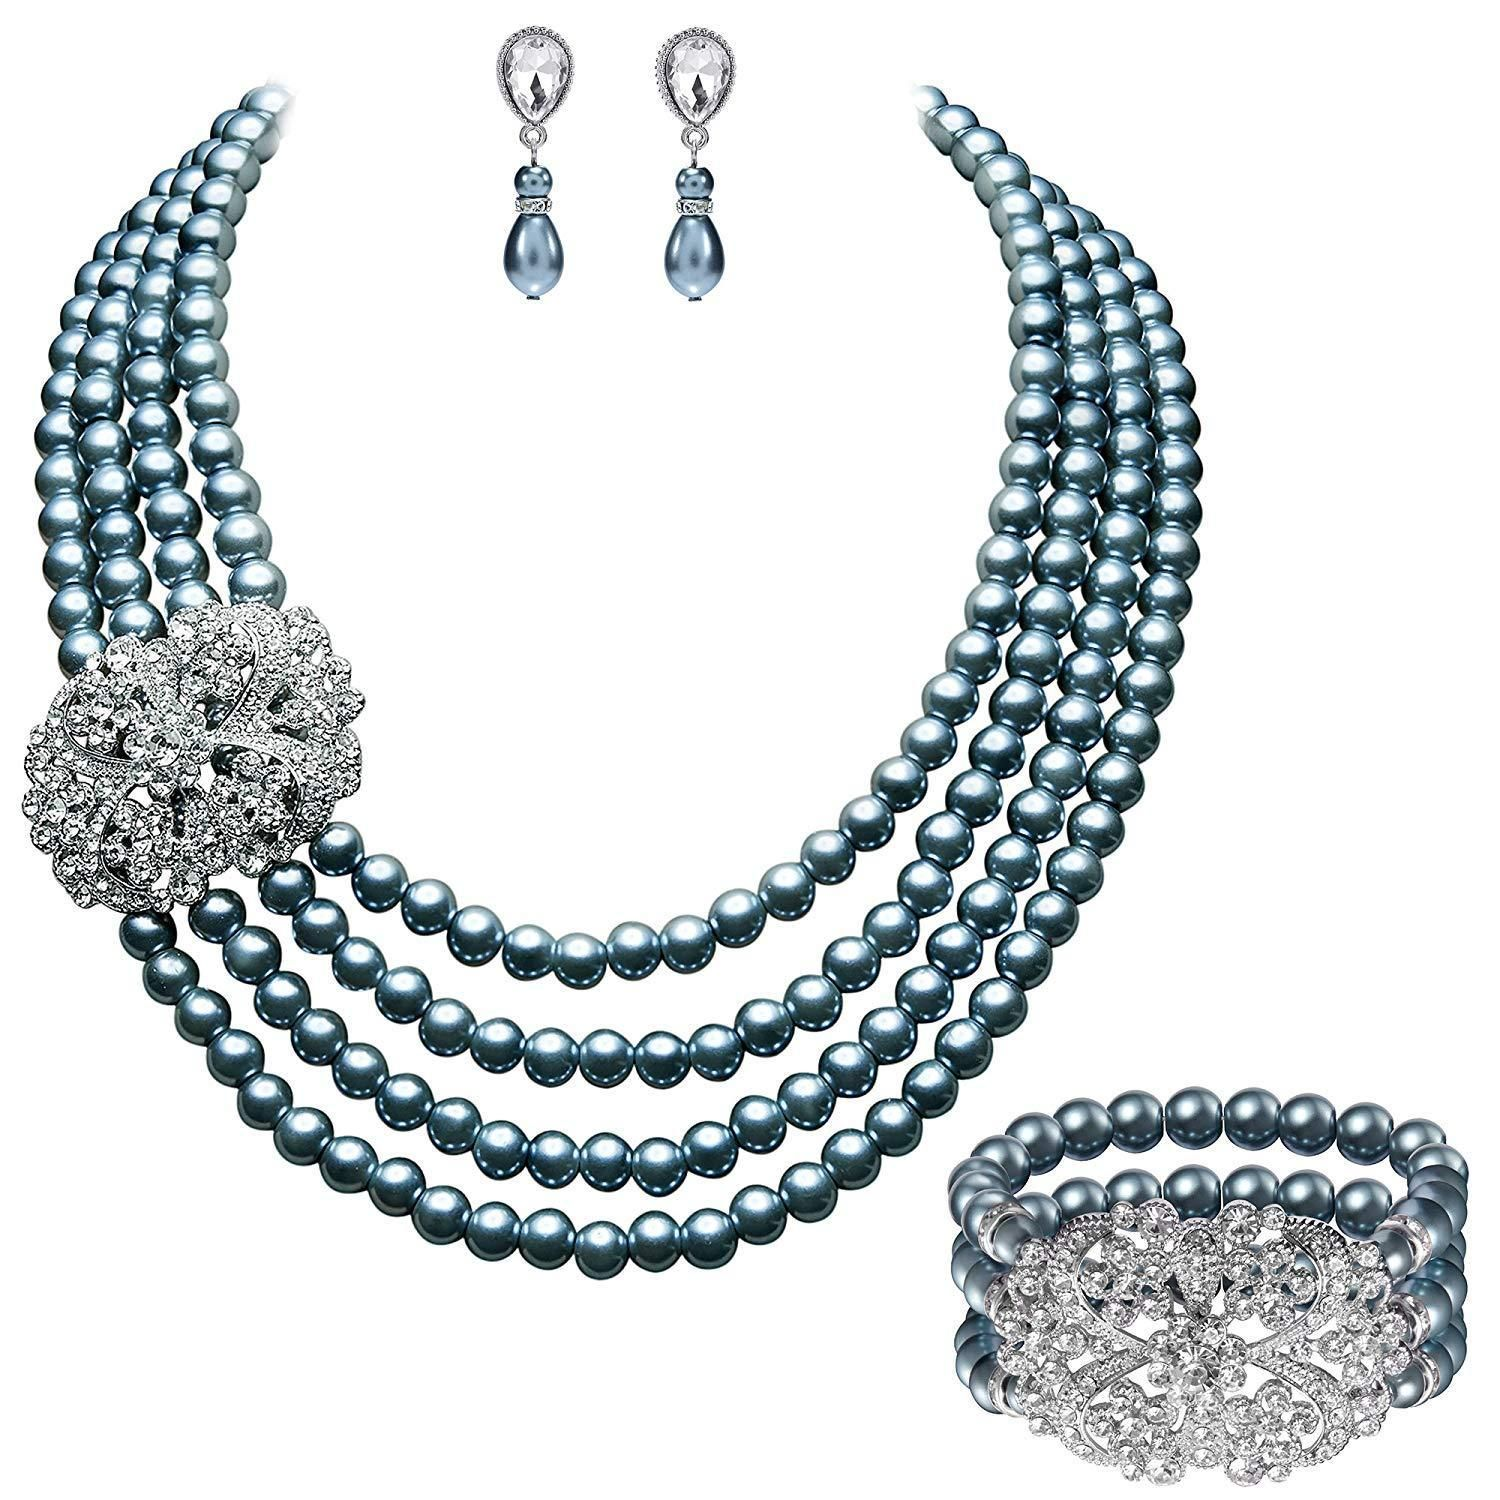 3fc838ae4 1920s Vintage Gatsby Bridal Multilayer Pearl Necklace Earrings Jewelry Set  with Brooch